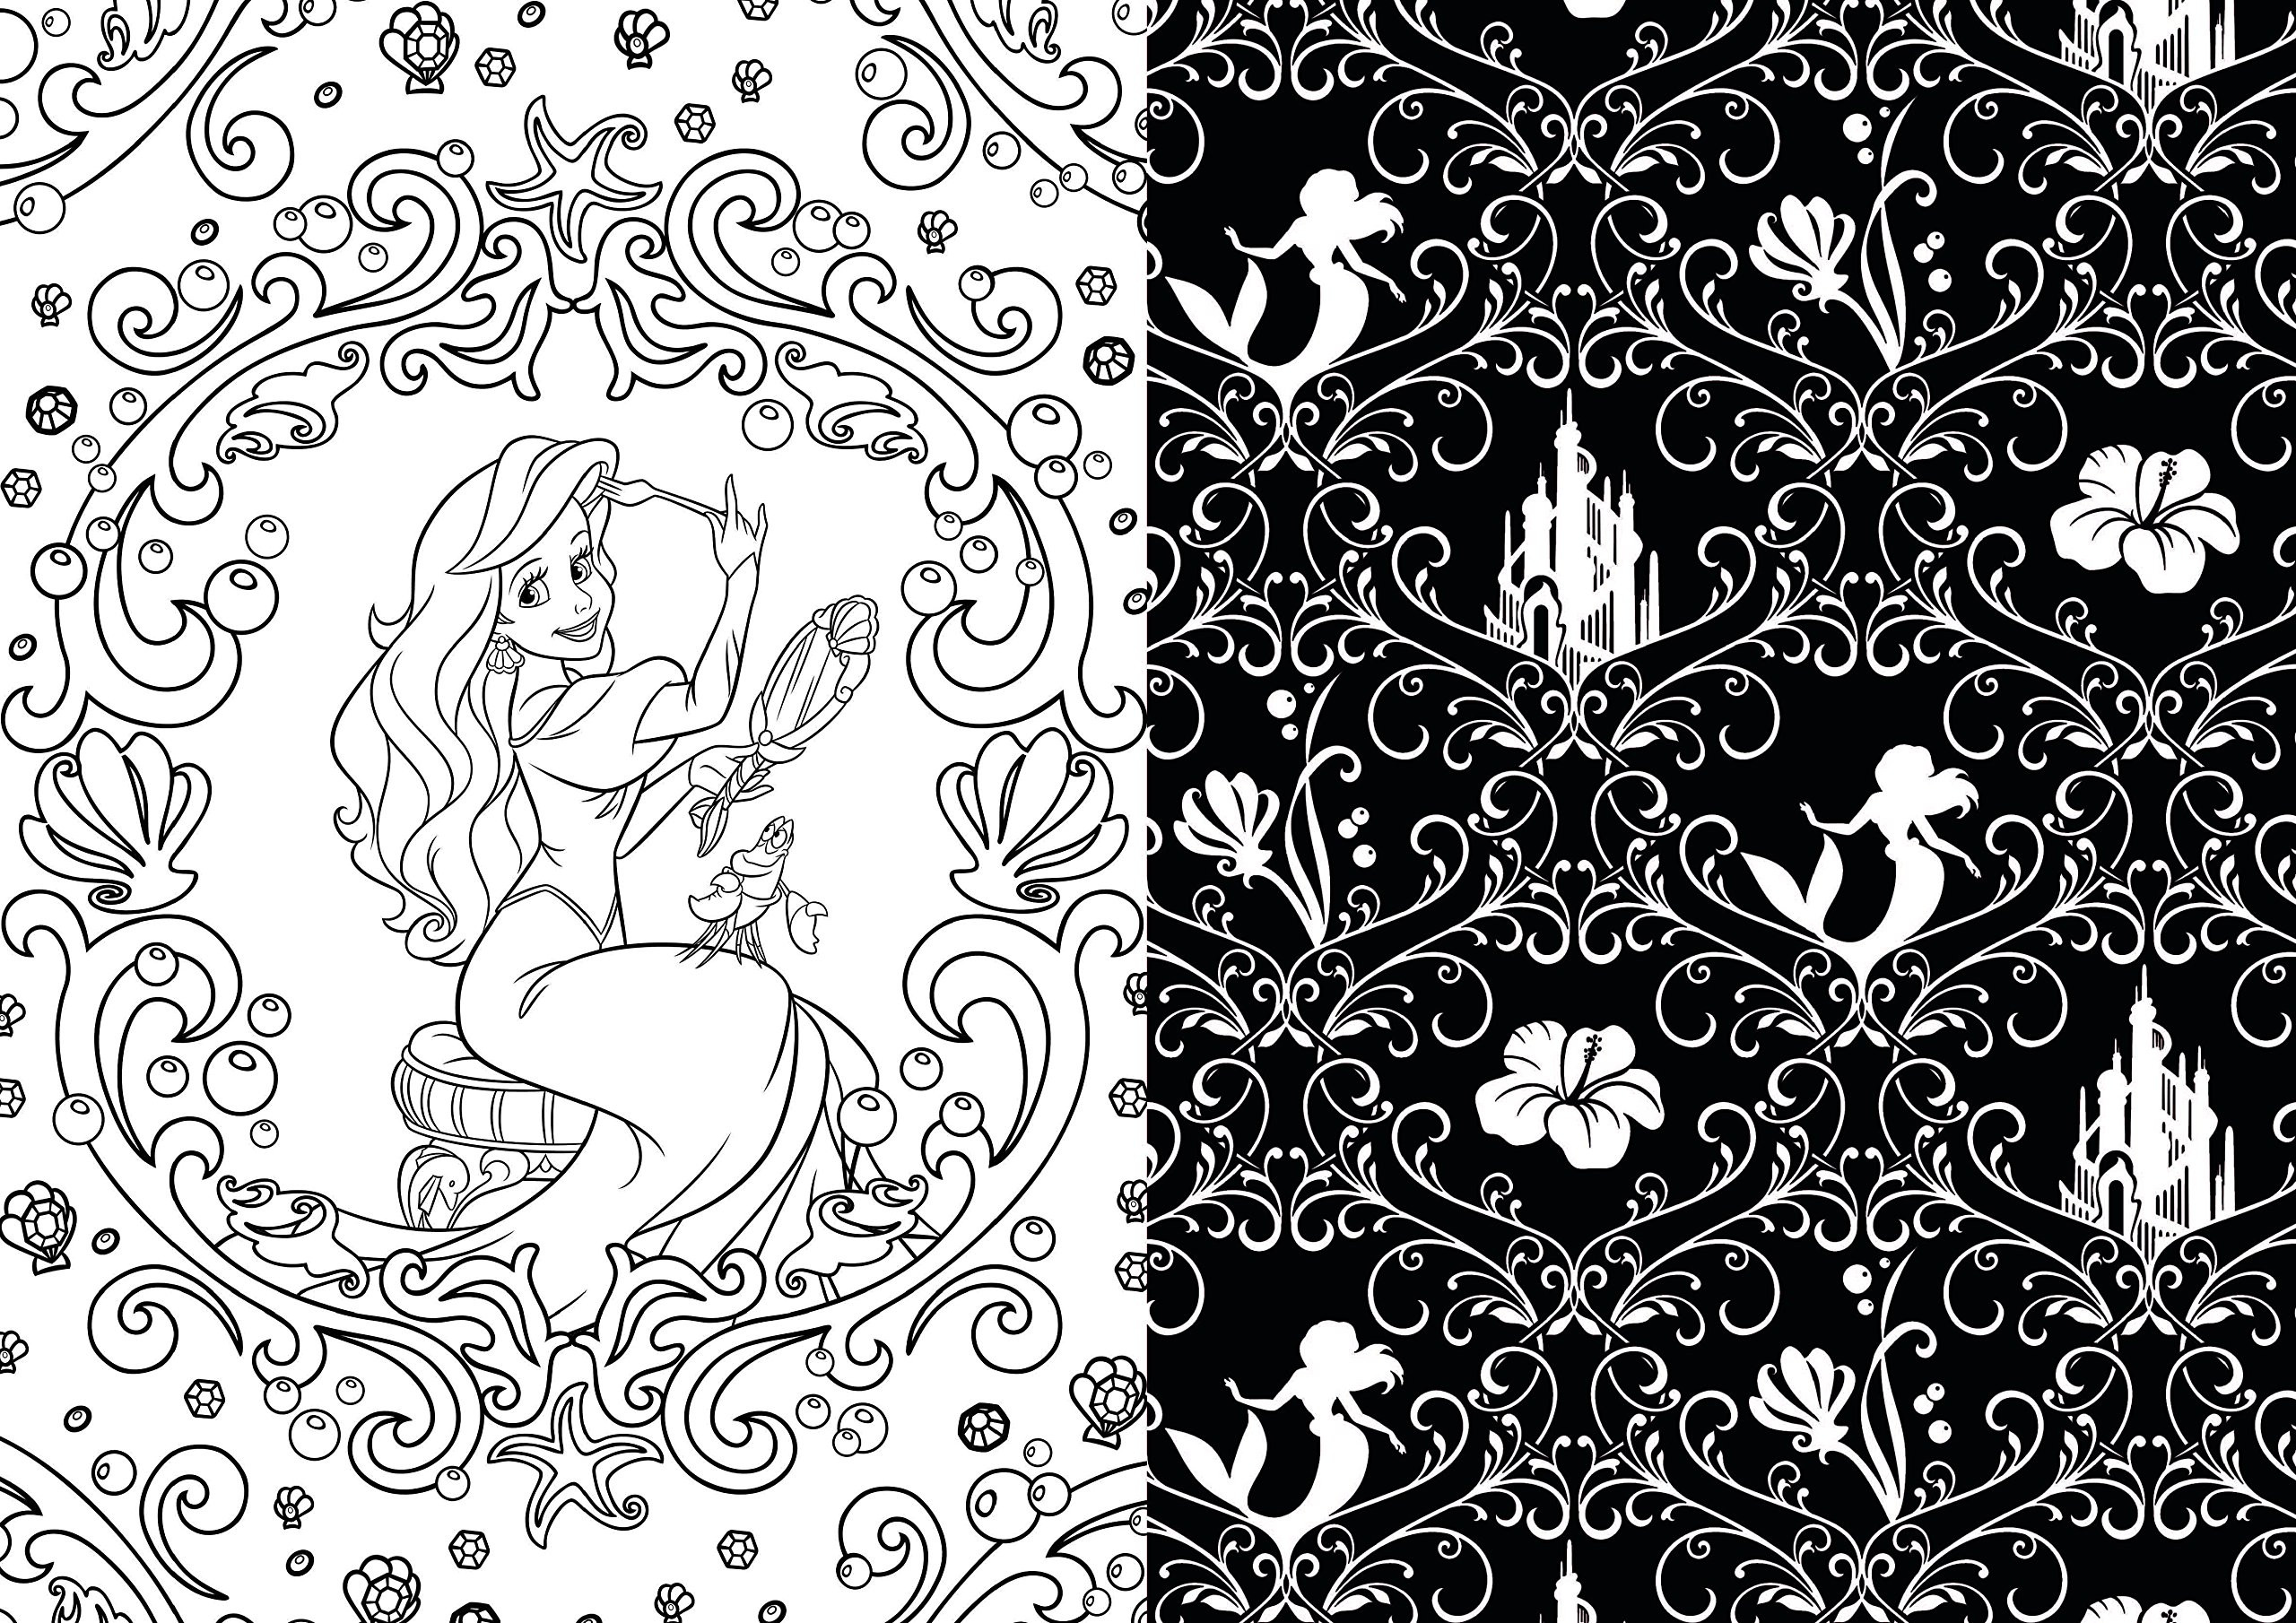 Best ideas about Disney Adult Coloring Books . Save or Pin Disney Adult Coloring Books Baby to Boomer Lifestyle Now.